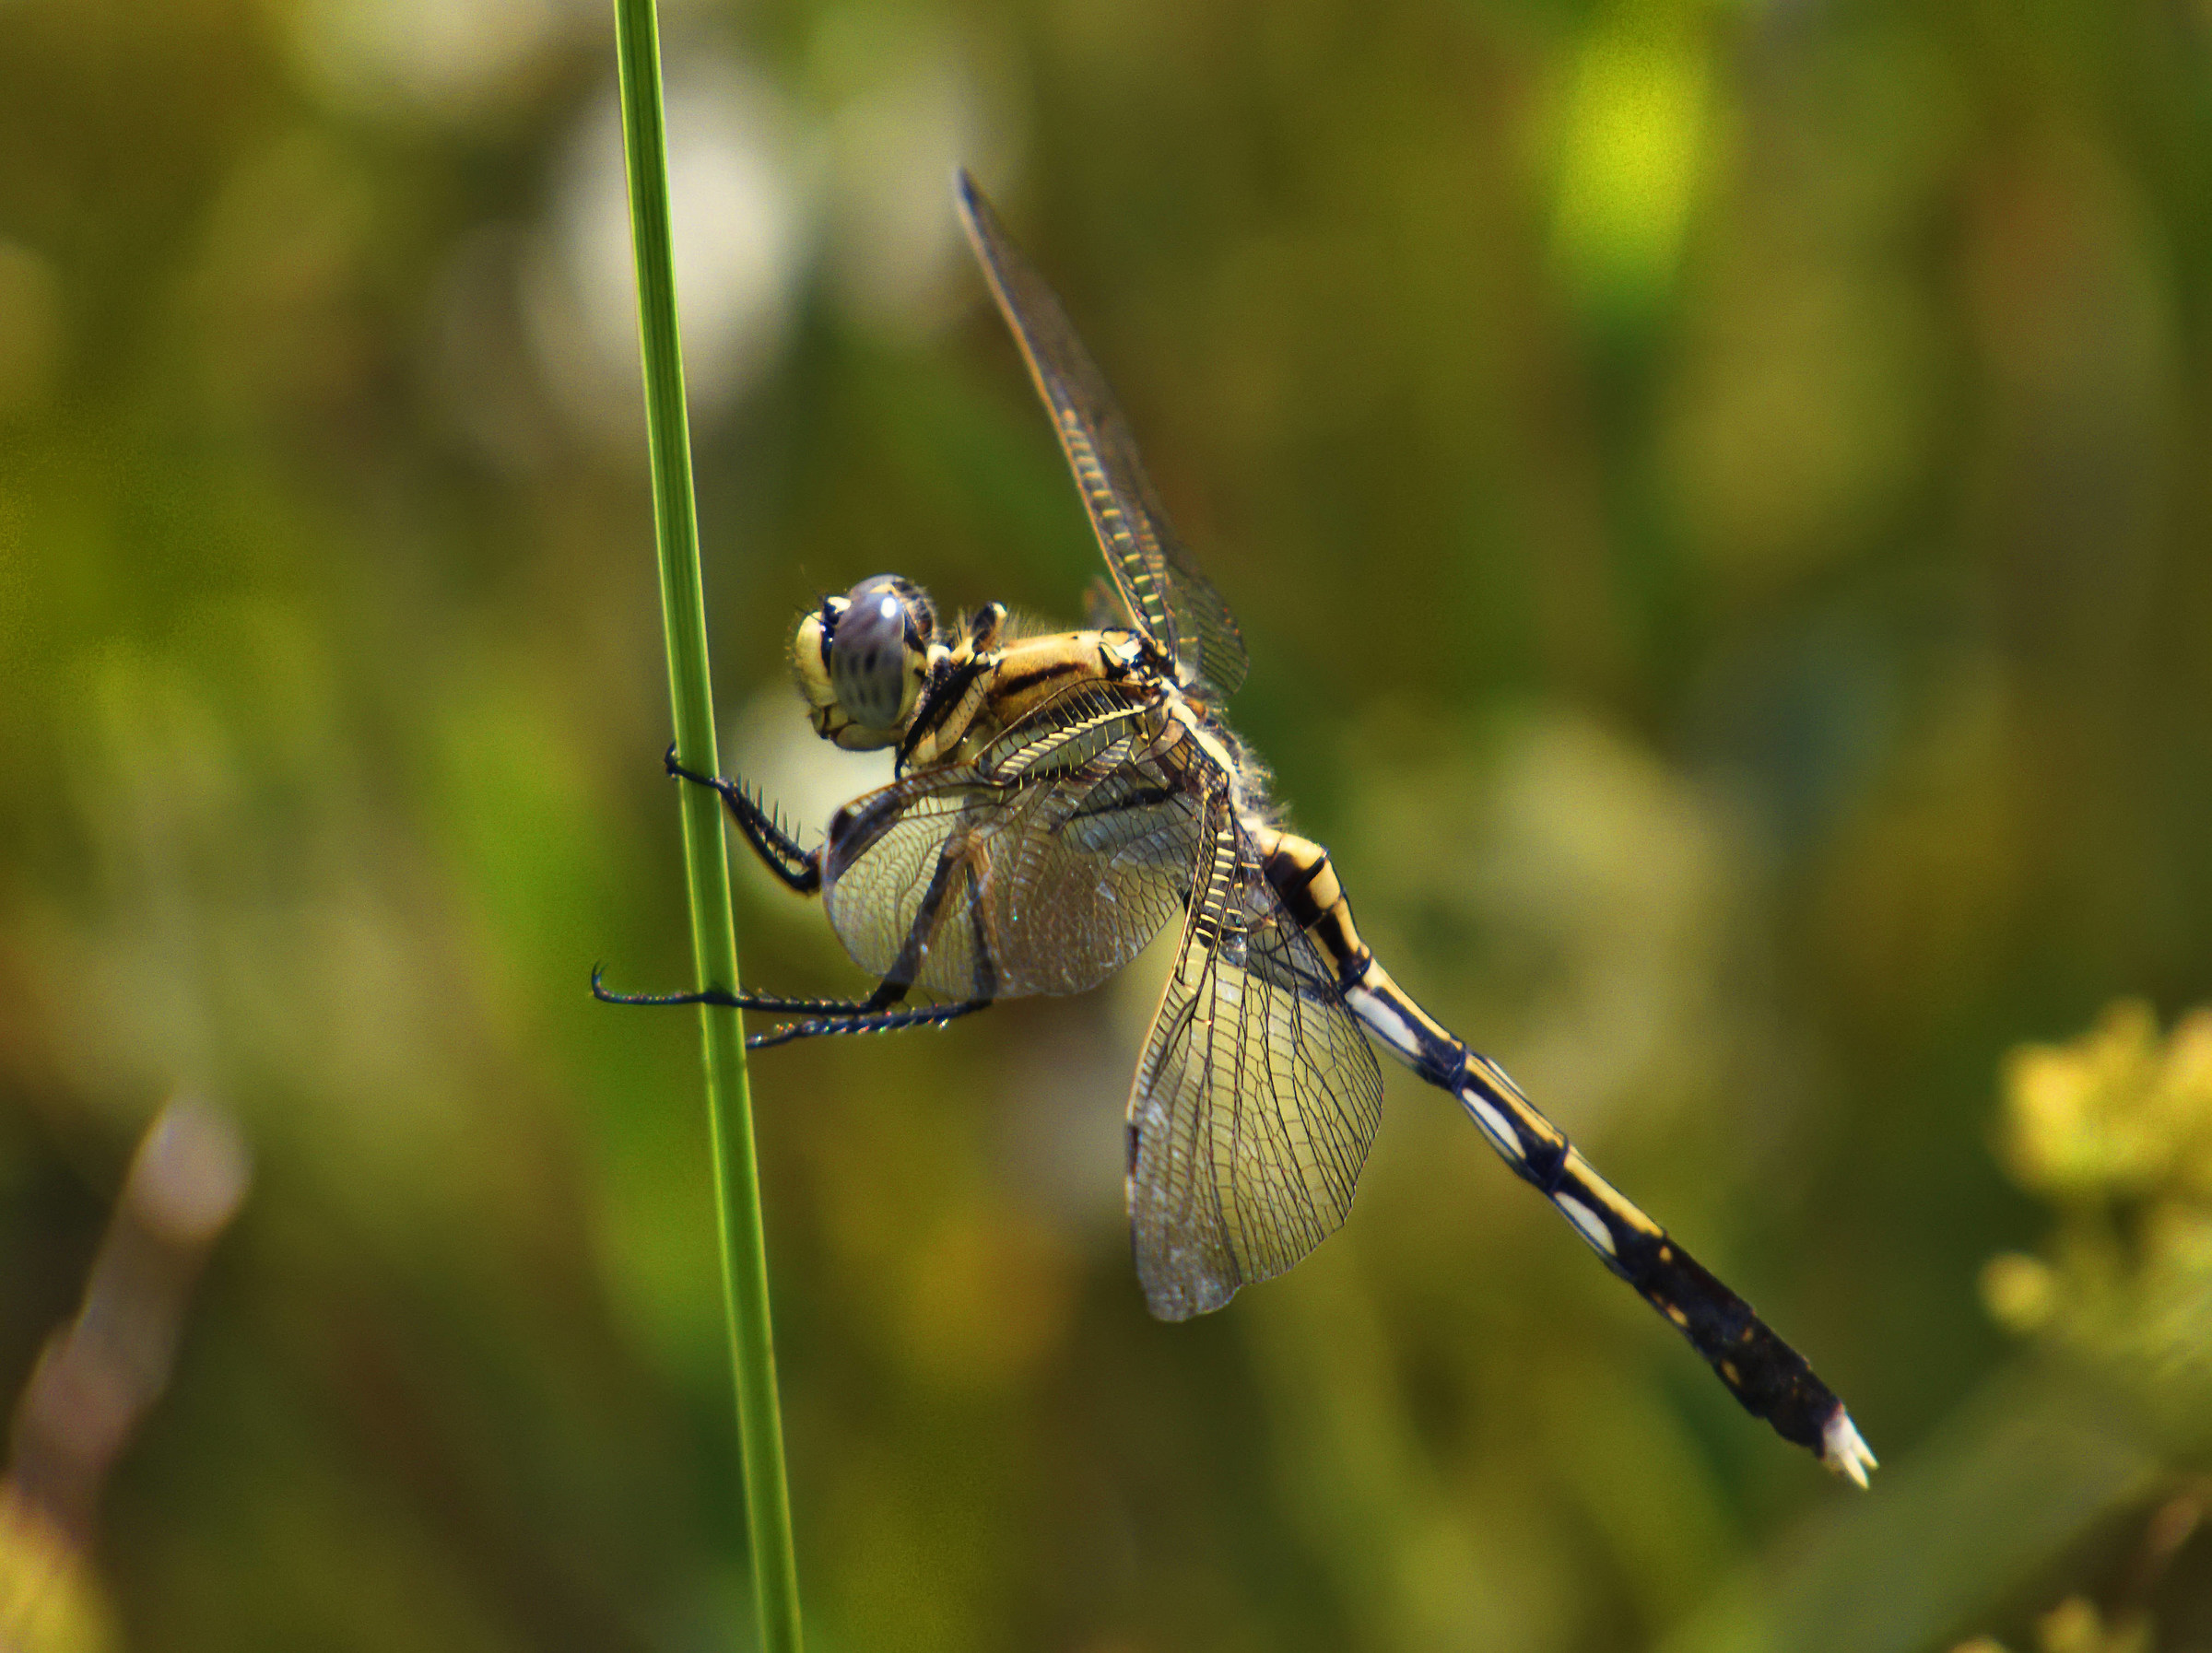 Dragonfly very common inland rice fields right now...